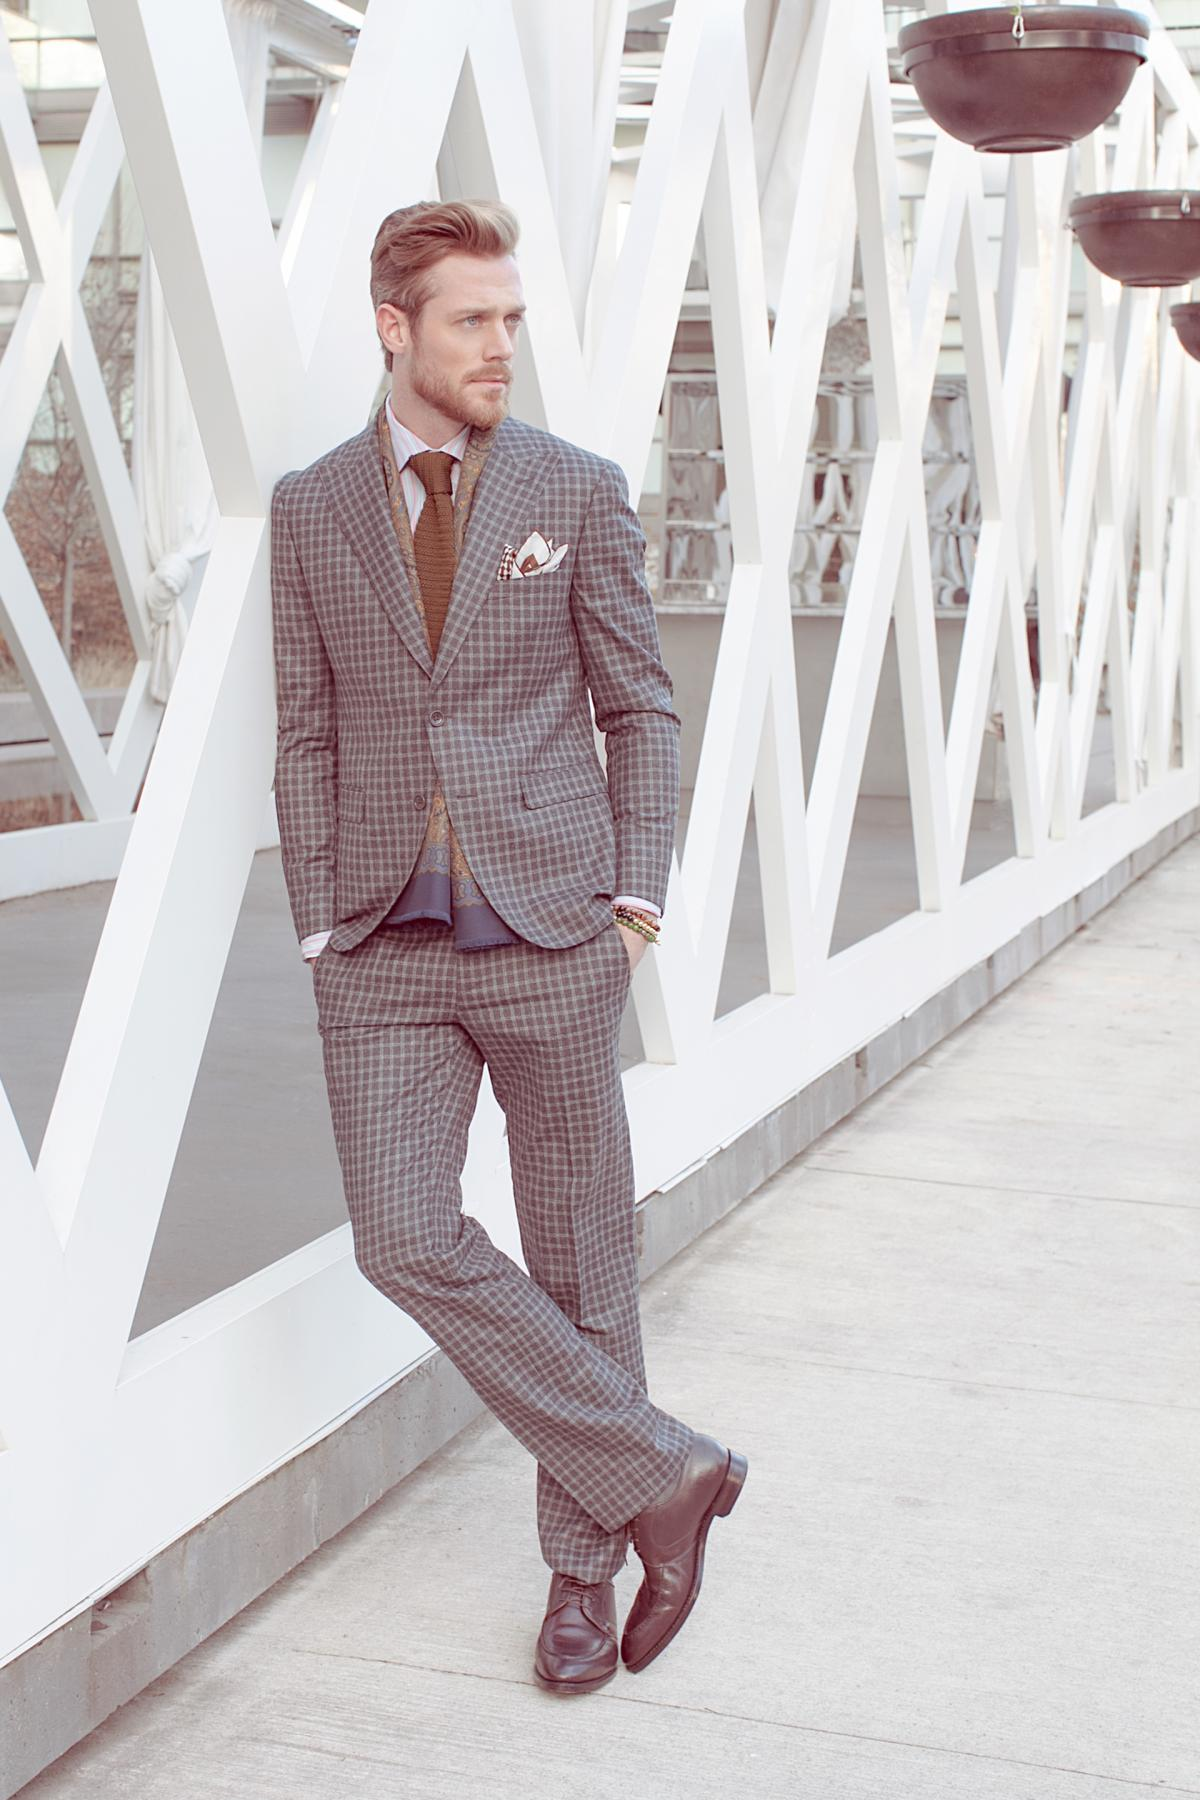 Classic grey suit is great for any occasion.